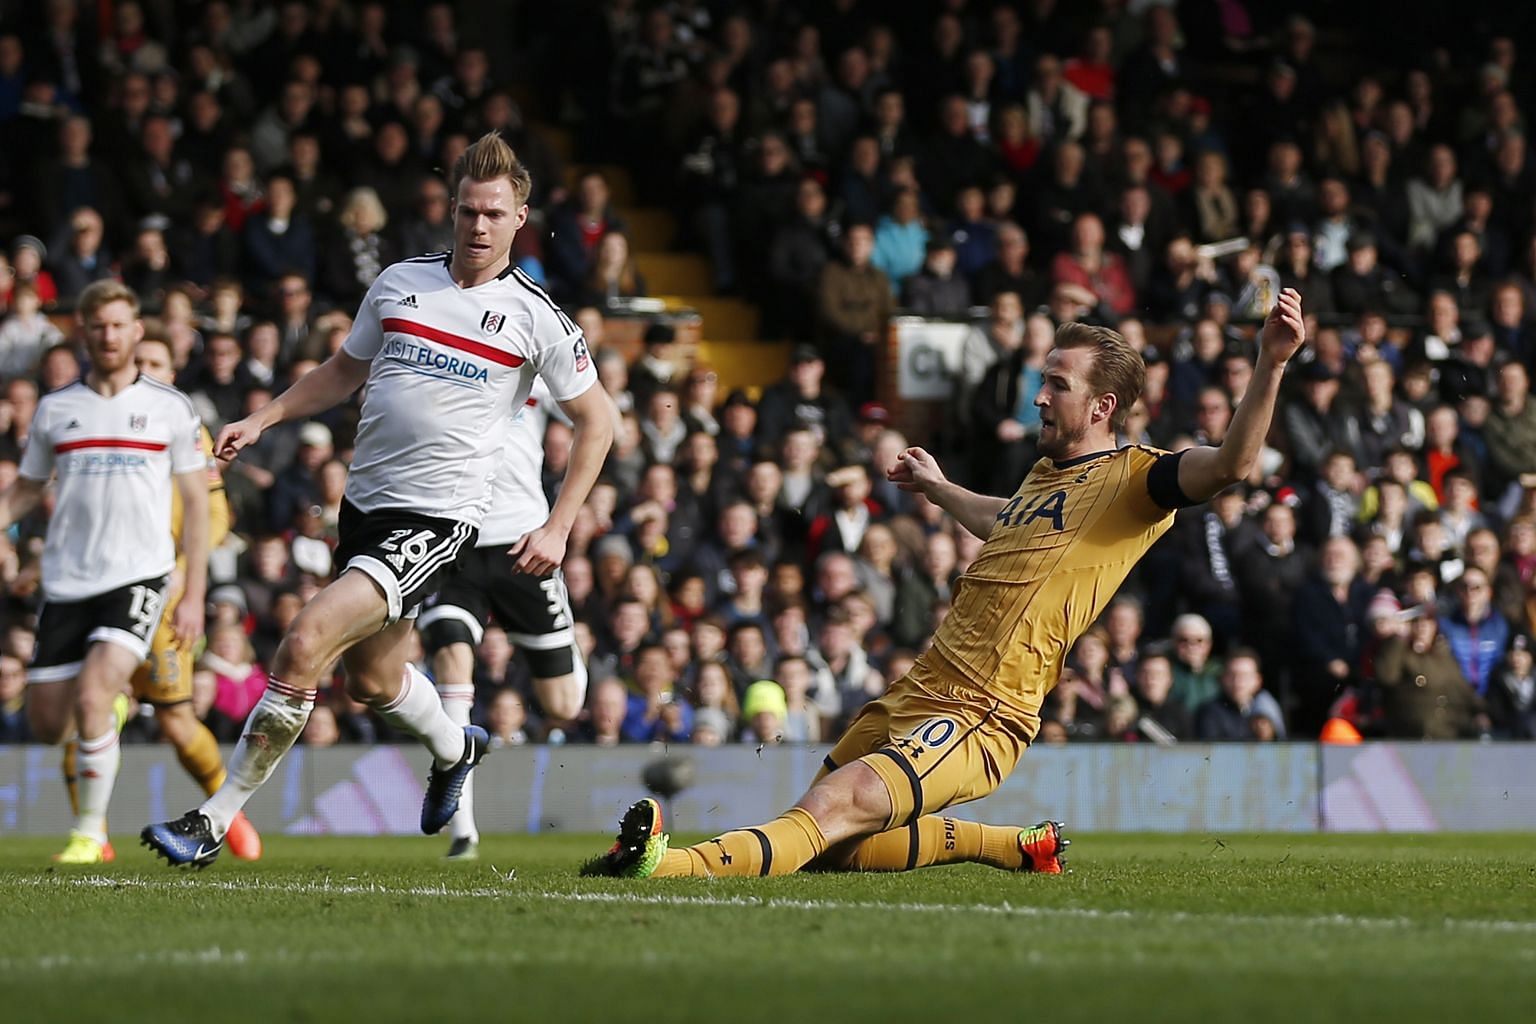 Tottenham's Harry Kane sliding in to open the scoring against Fulham in the 16th minute, after Christian Eriksen had placed the ball on a platter for the England striker. The Spurs duo repeated the combination in the 51st minute as Kane buried anothe